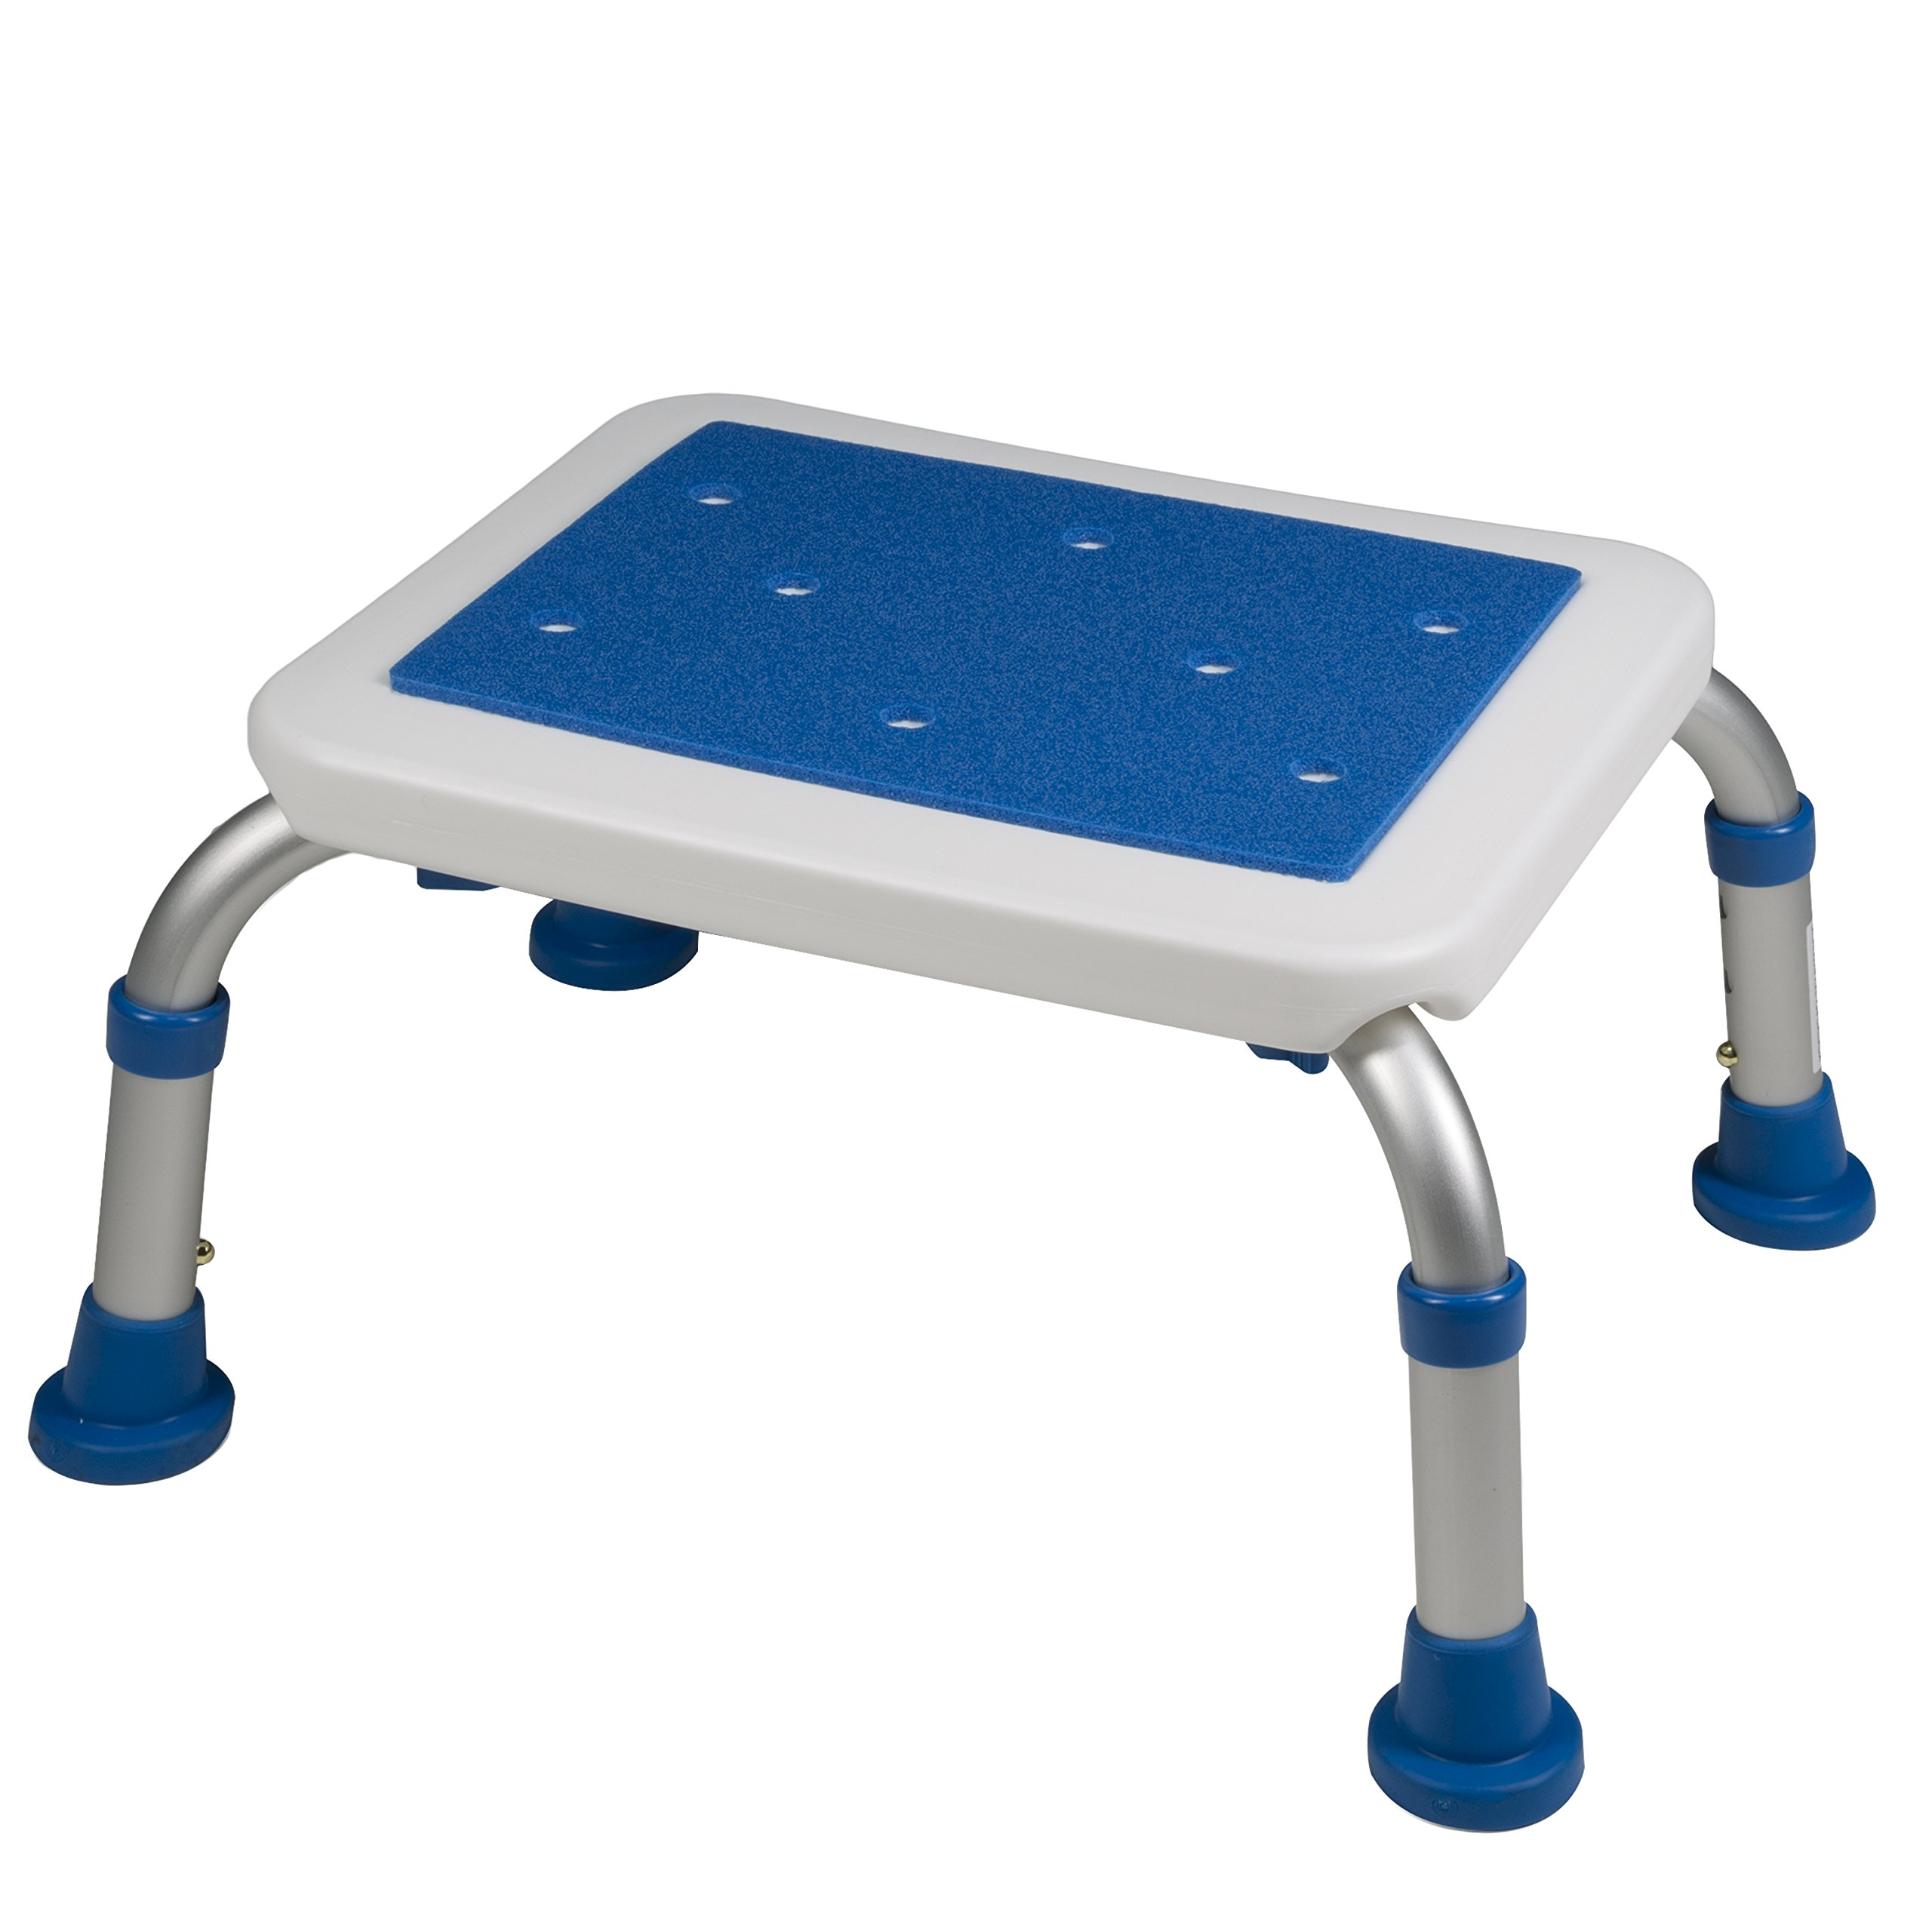 Pcp Adjustable Non-Slip Bath Safety Step Stool, White/Blue